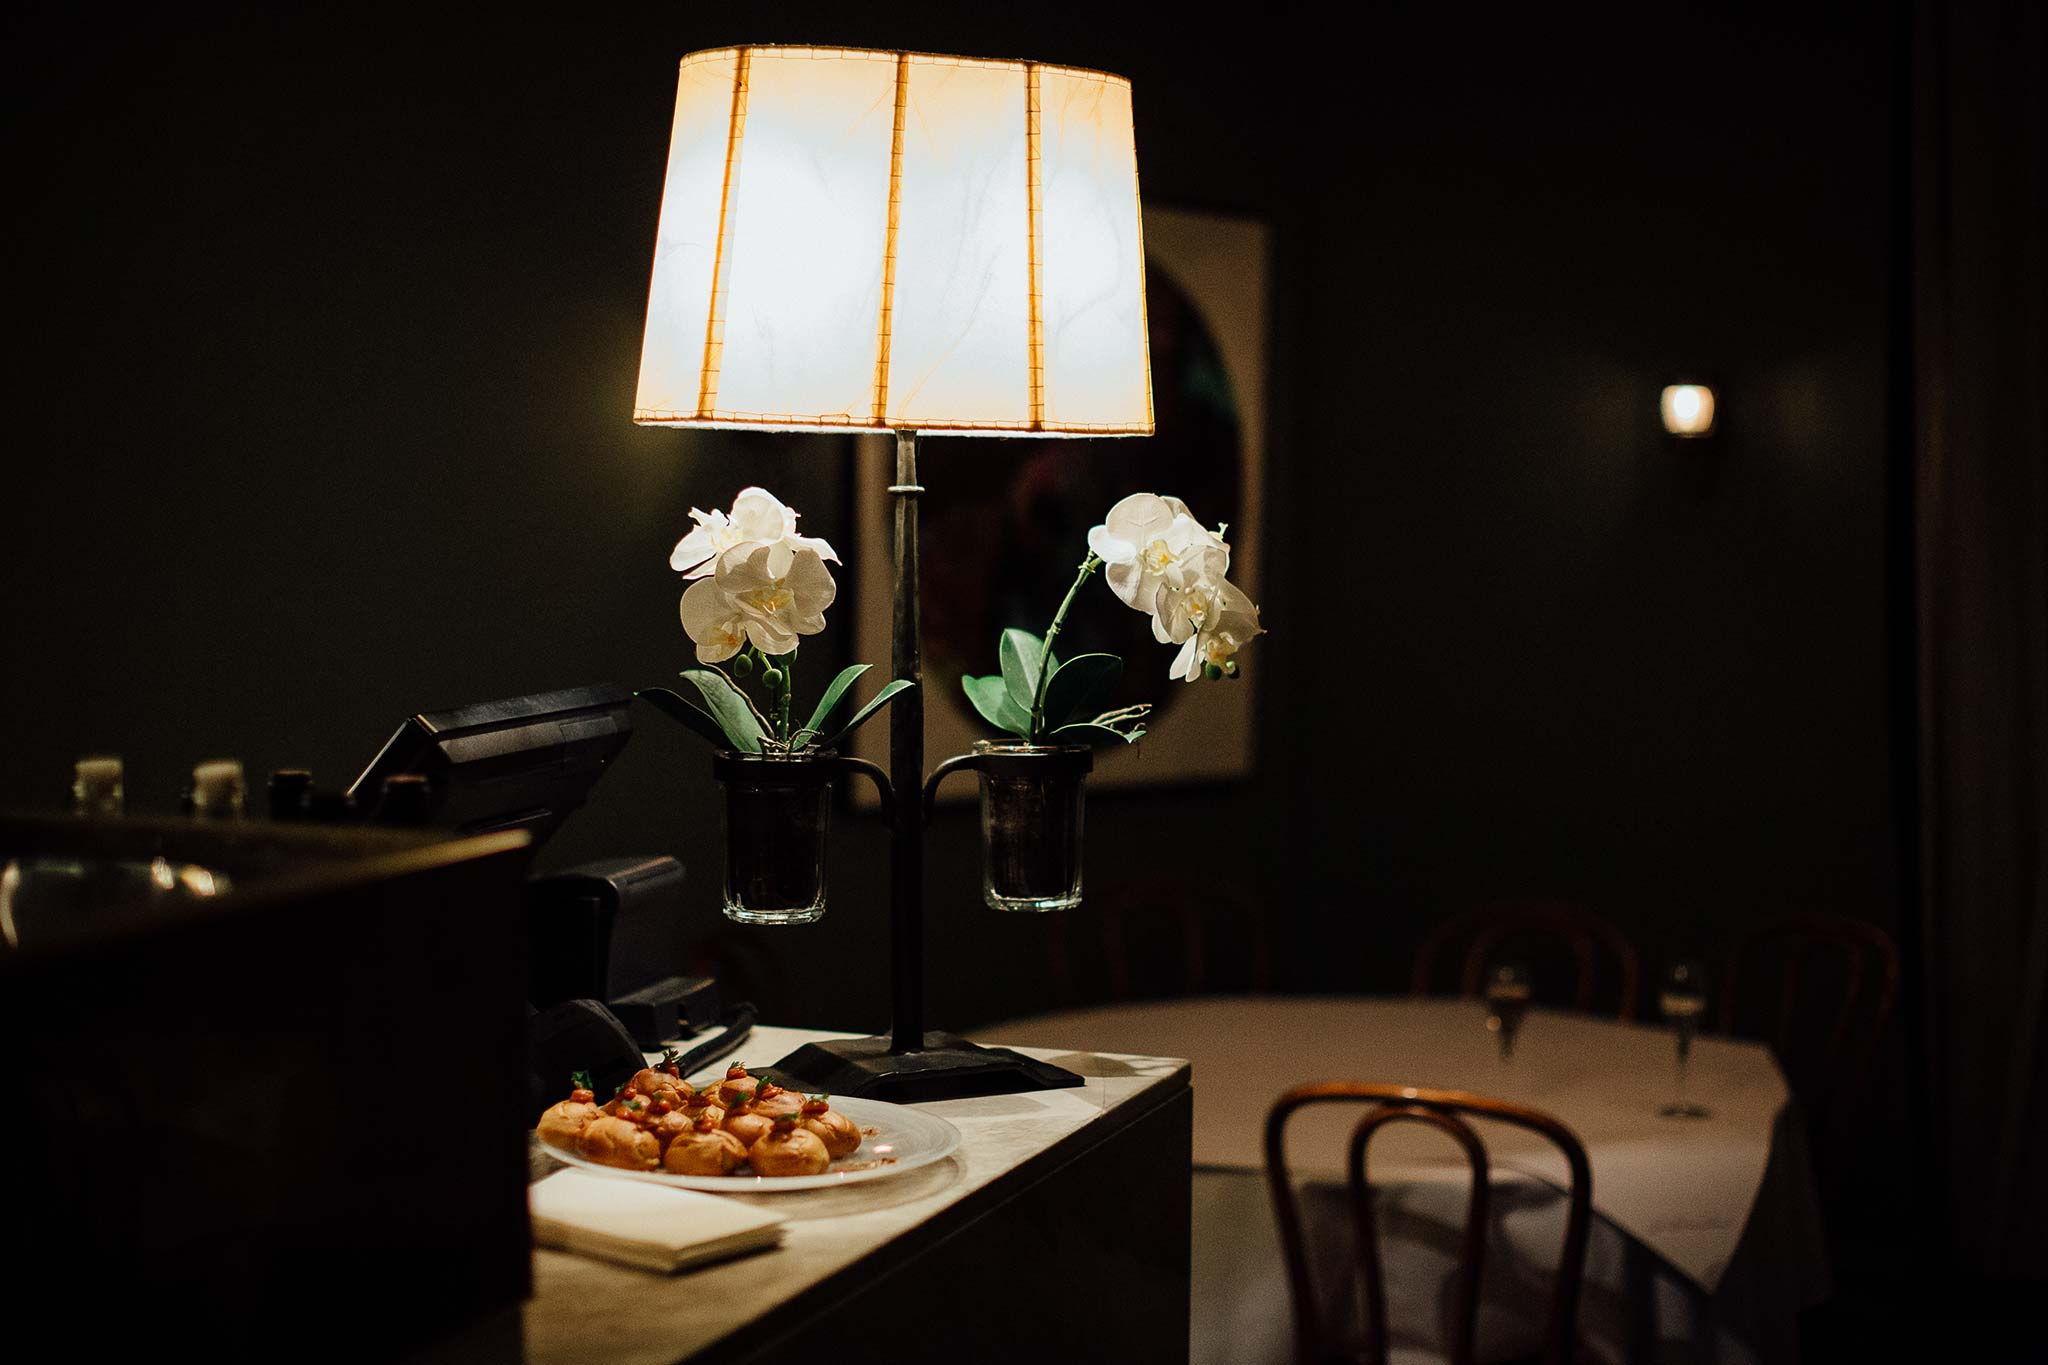 melbourne-entrecote-wedding-reception-lamp